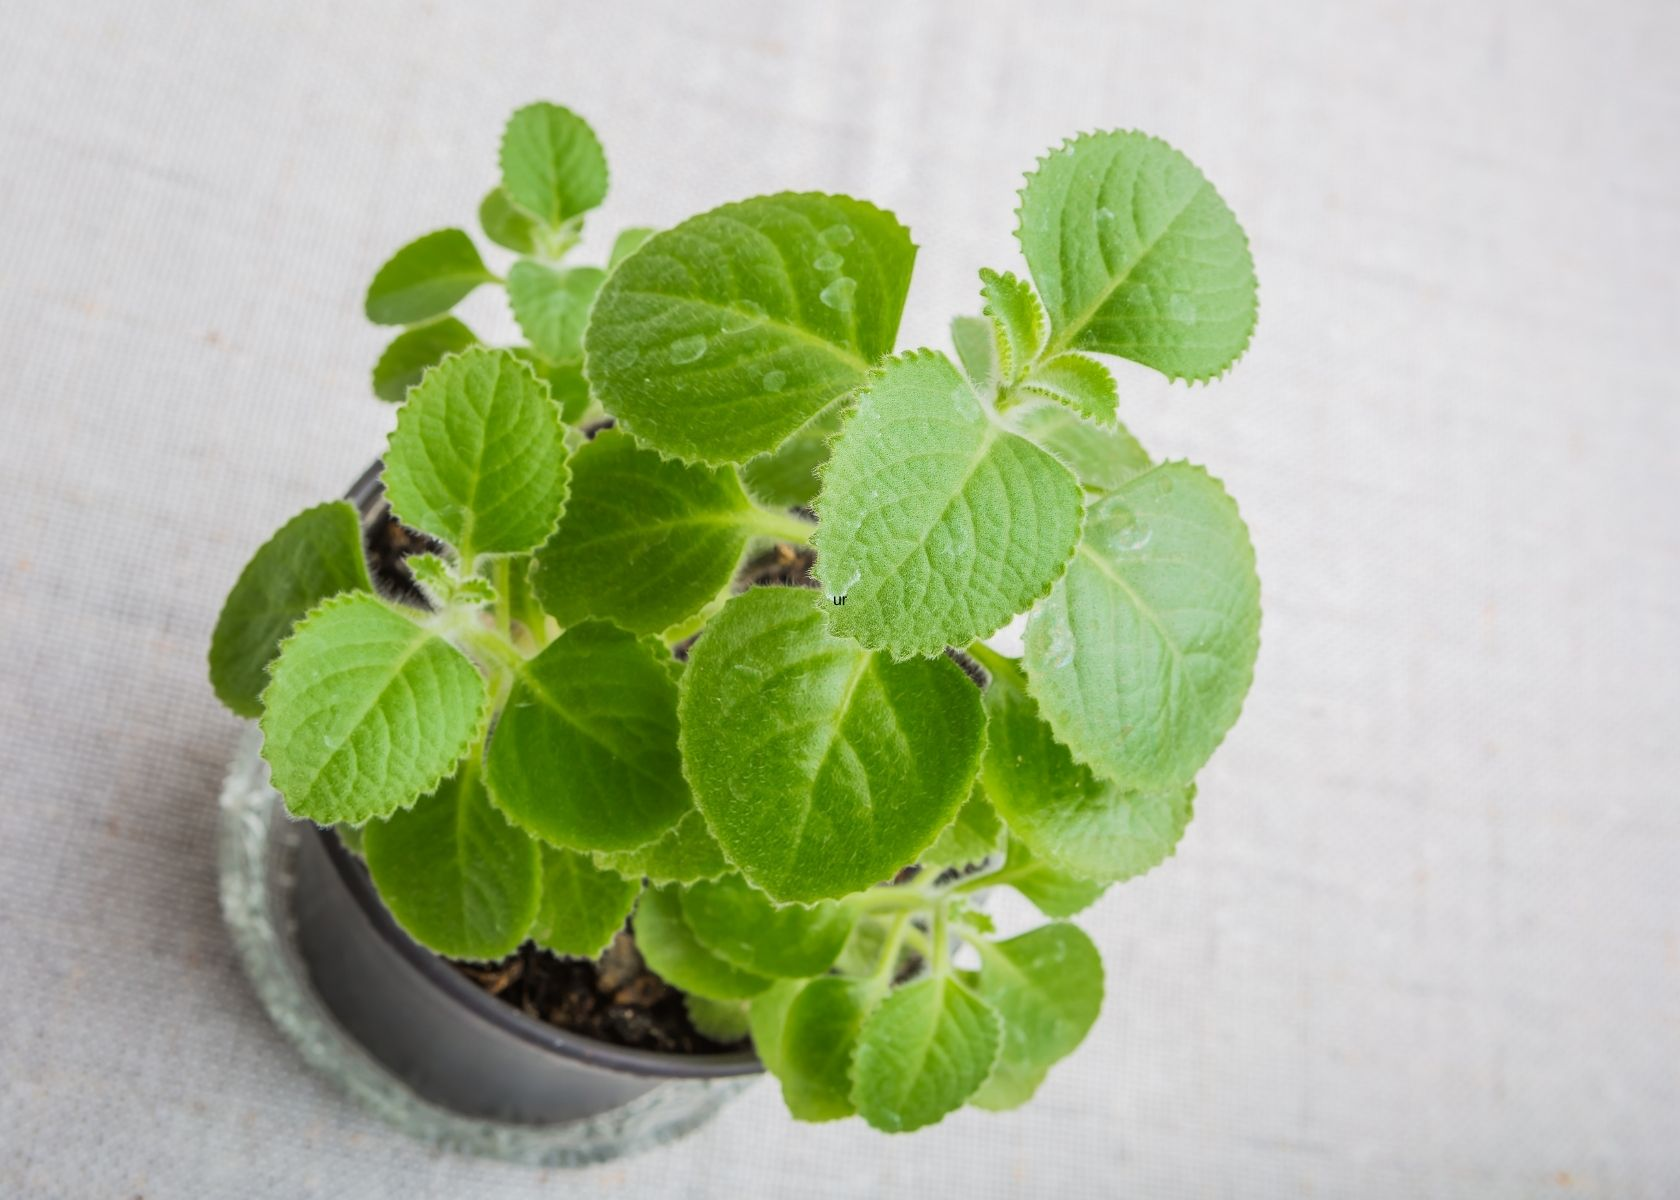 Overhead photo of Mexican oregano in pot on gray table.